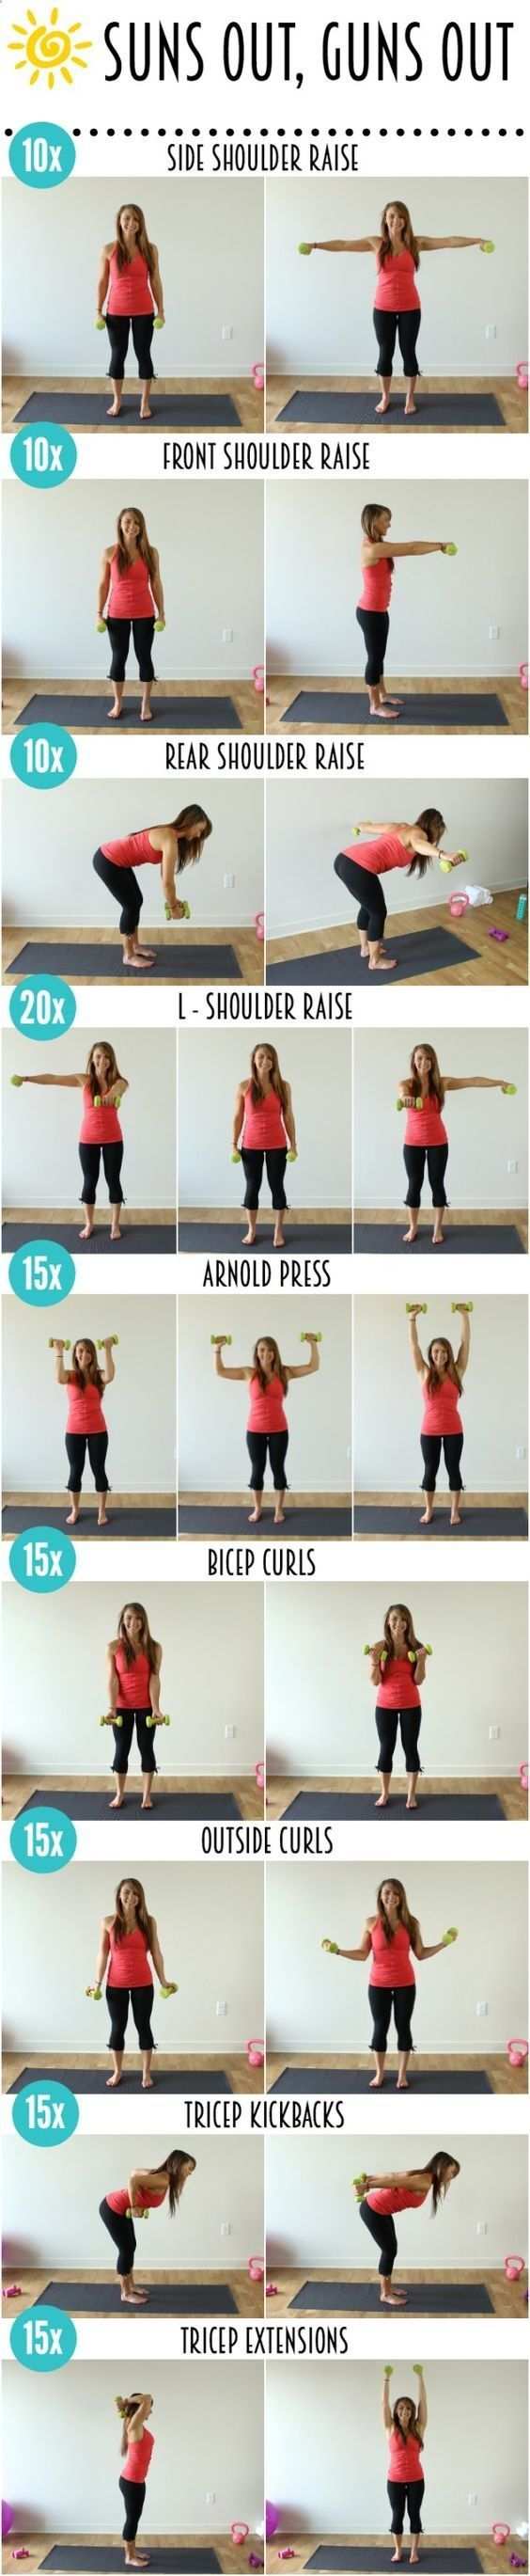 Exercice Du Sport : Suns Out Guns Out Arm Workout - #Exercice